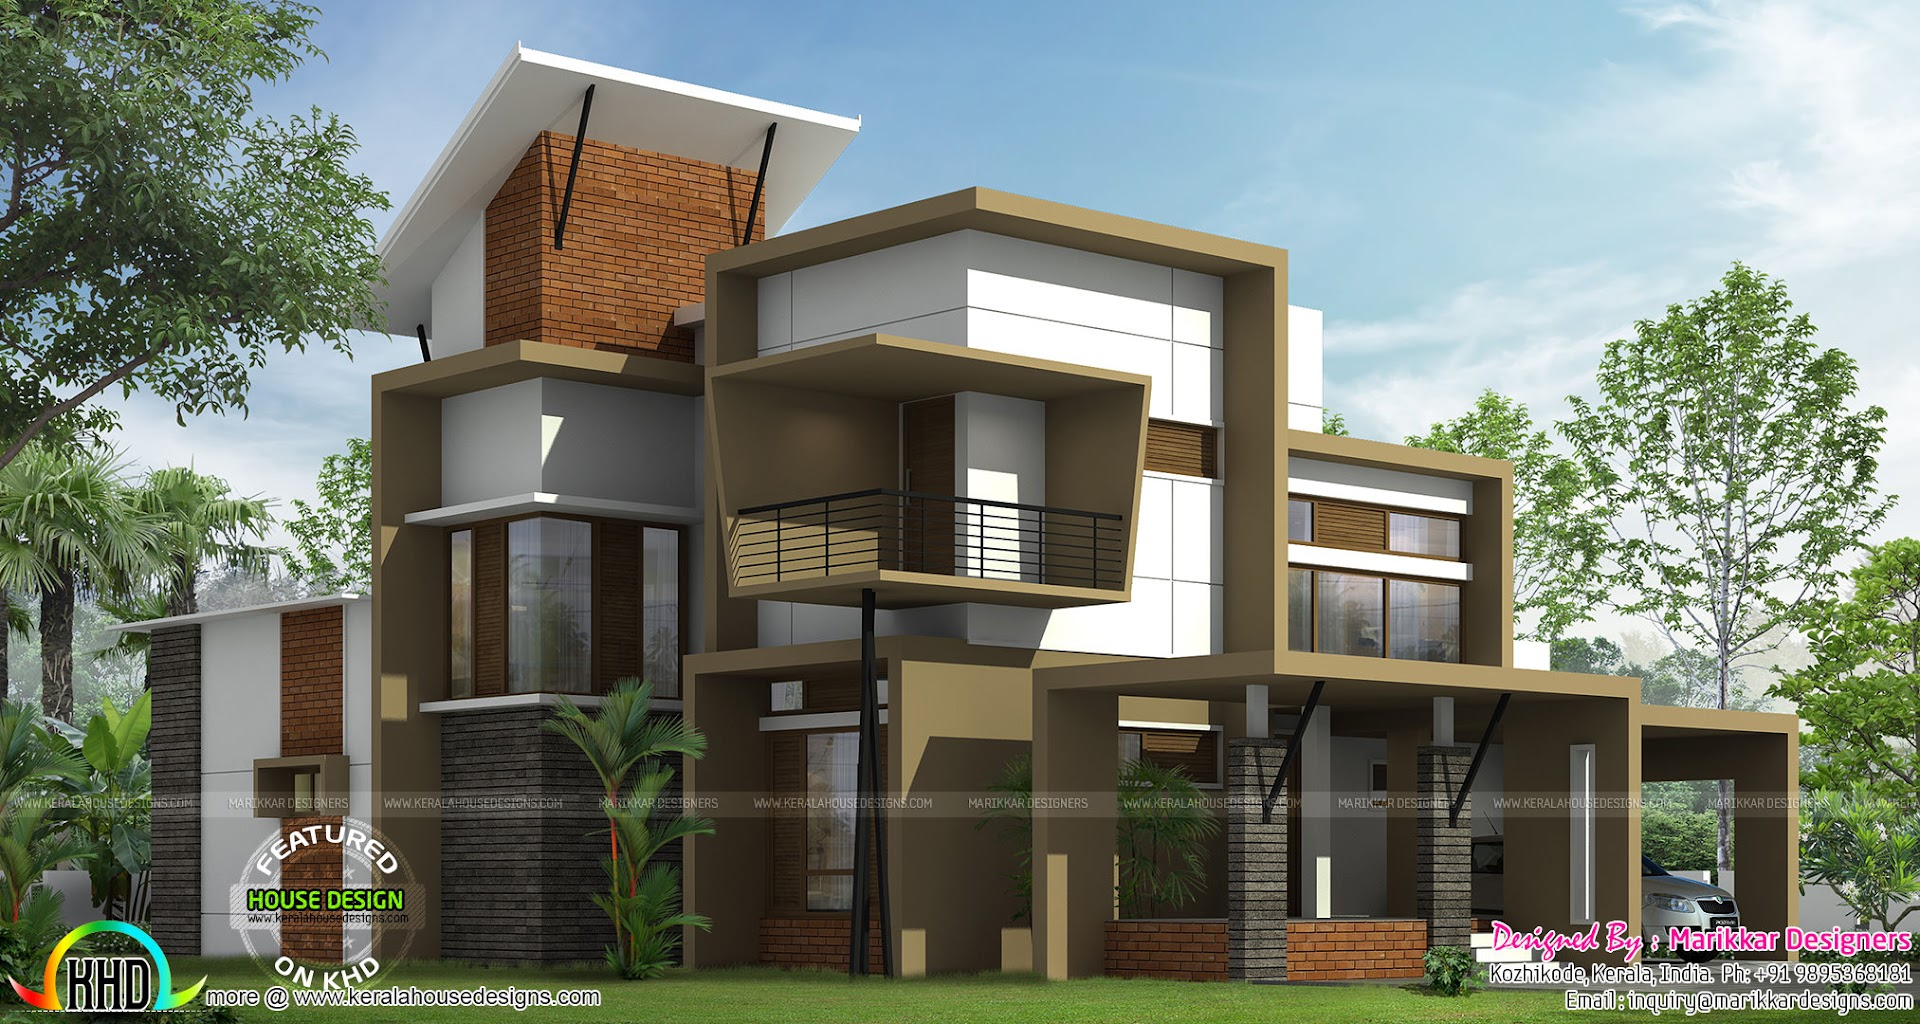 Modern ultra contemporary house kerala home design and floor plans for Ultra modern contemporary house plans